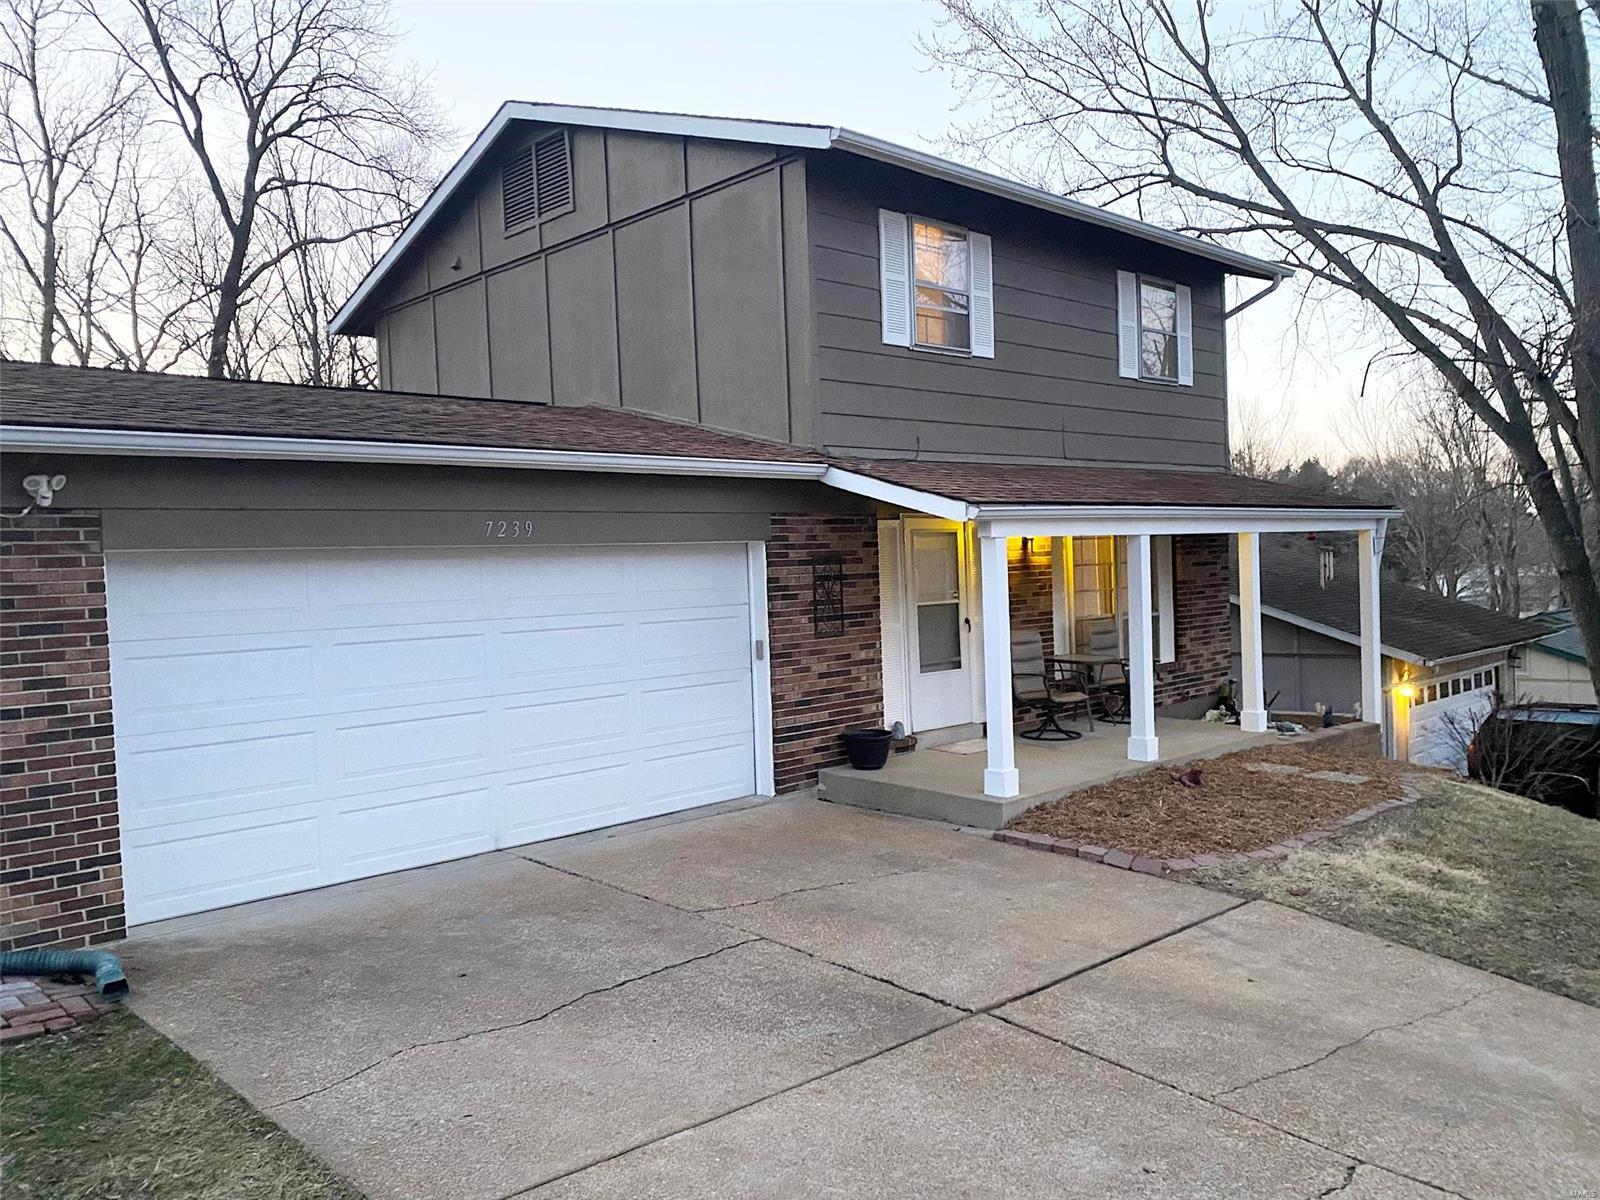 7239 Meriwether Property Photo - Barnhart, MO real estate listing